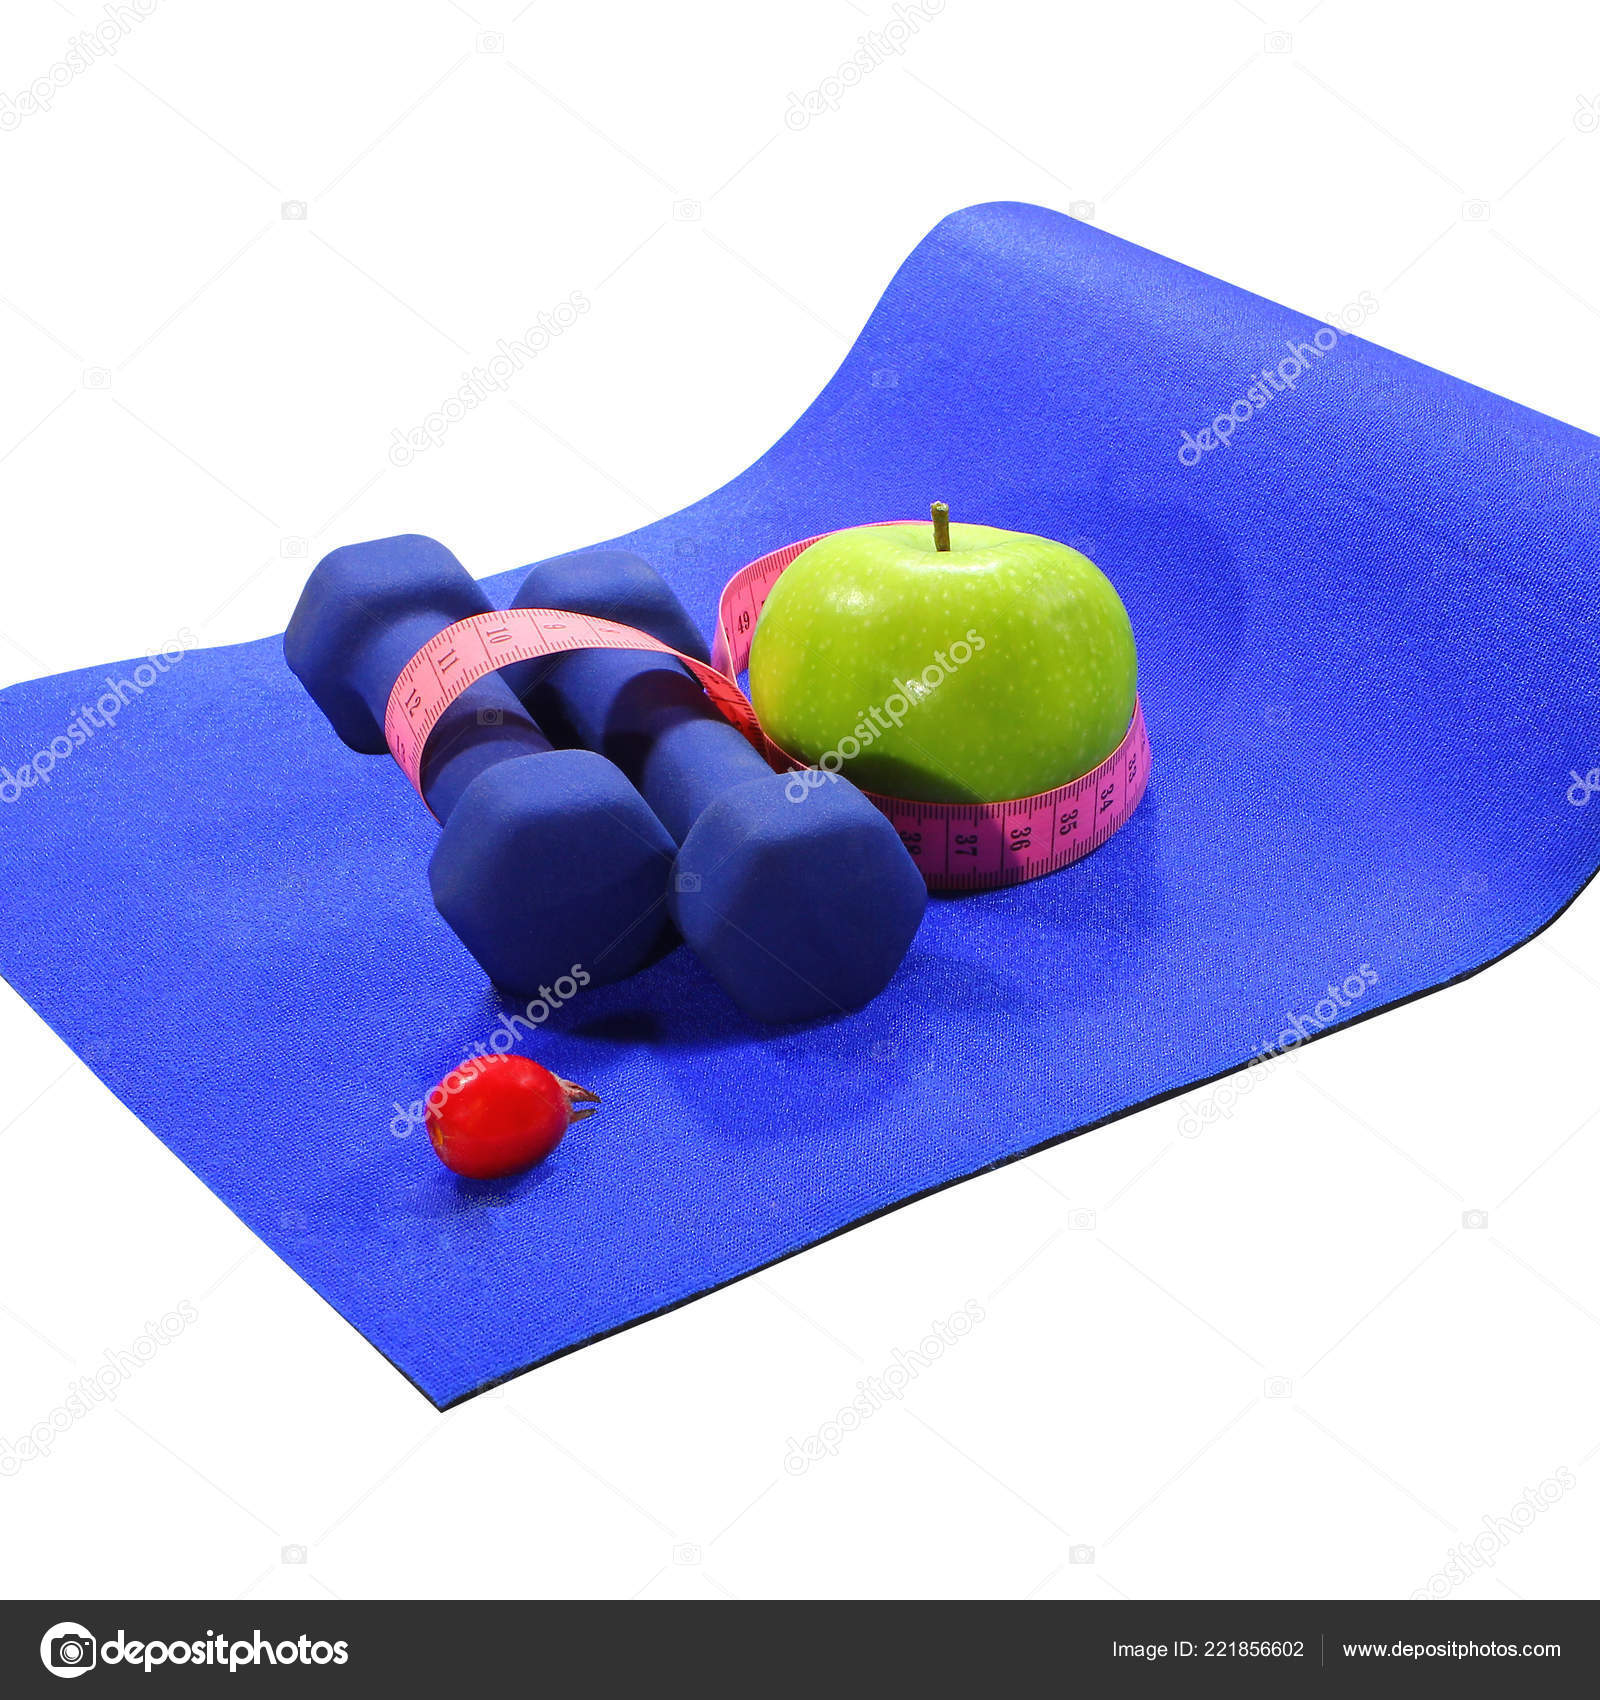 a9ac2b2a8c119 Blue mat with dumbbells green apple drink measuring tape isolated on white  background, healthy lifestyle concept — Photo by k777x